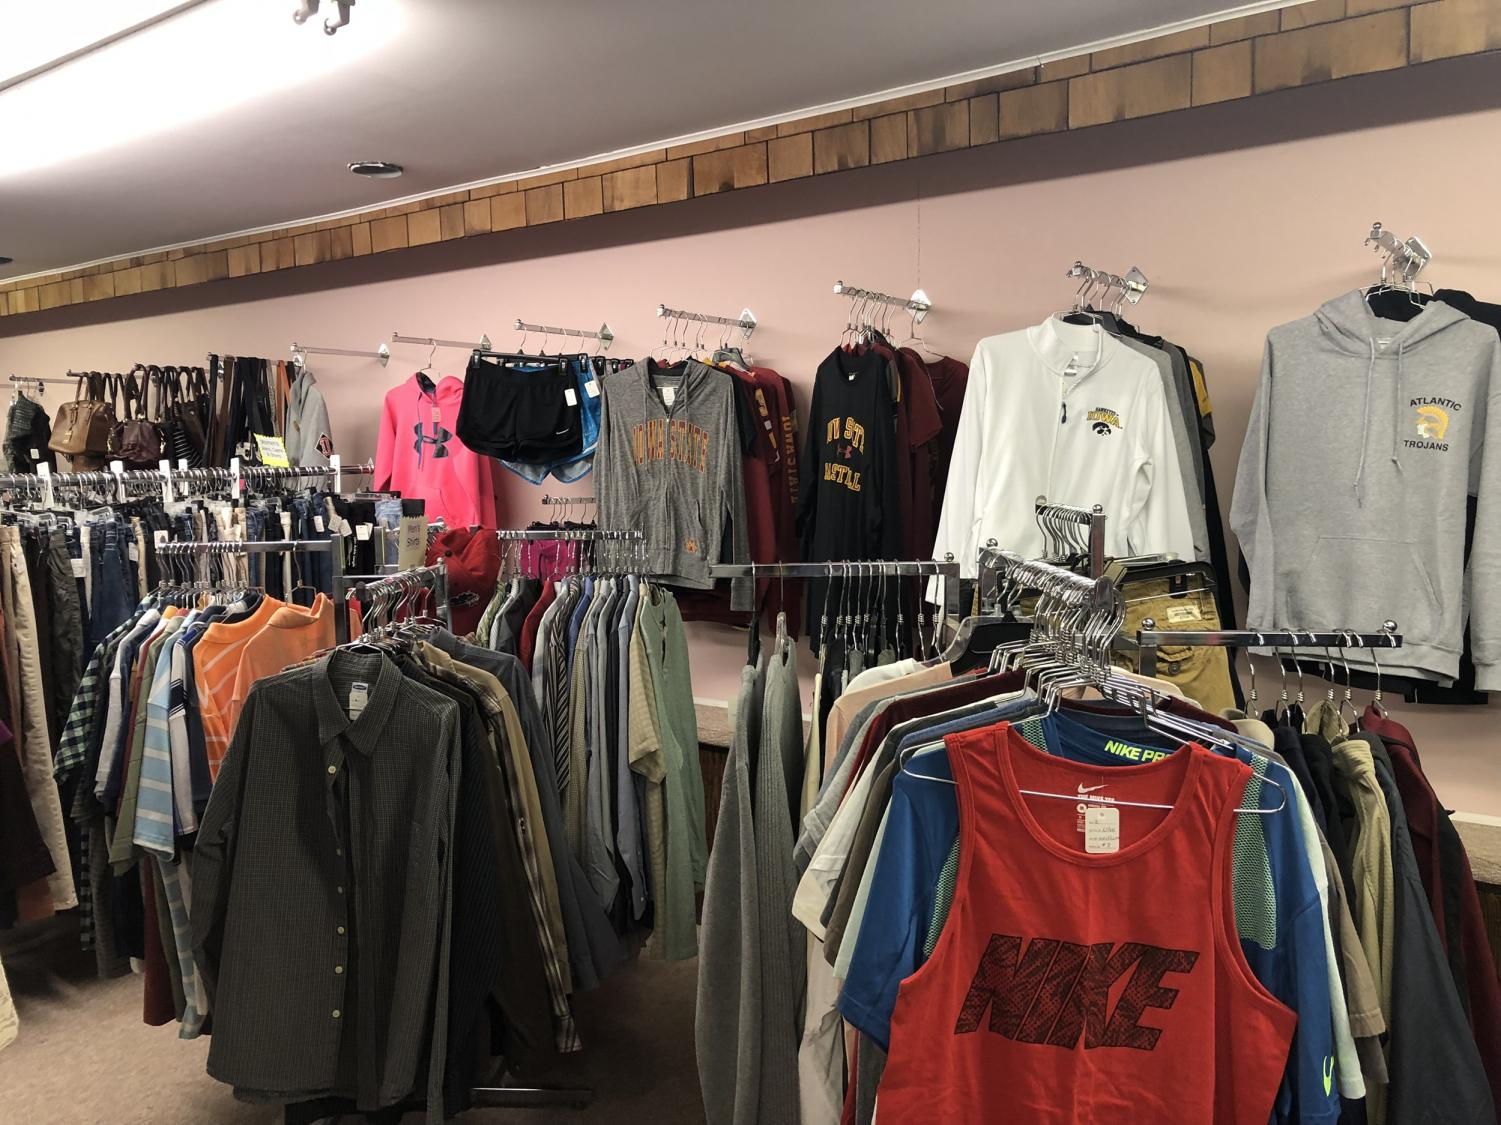 The racks are filled with many clothes for all ages and genders. Off the Rack is located on Chestnut Street.